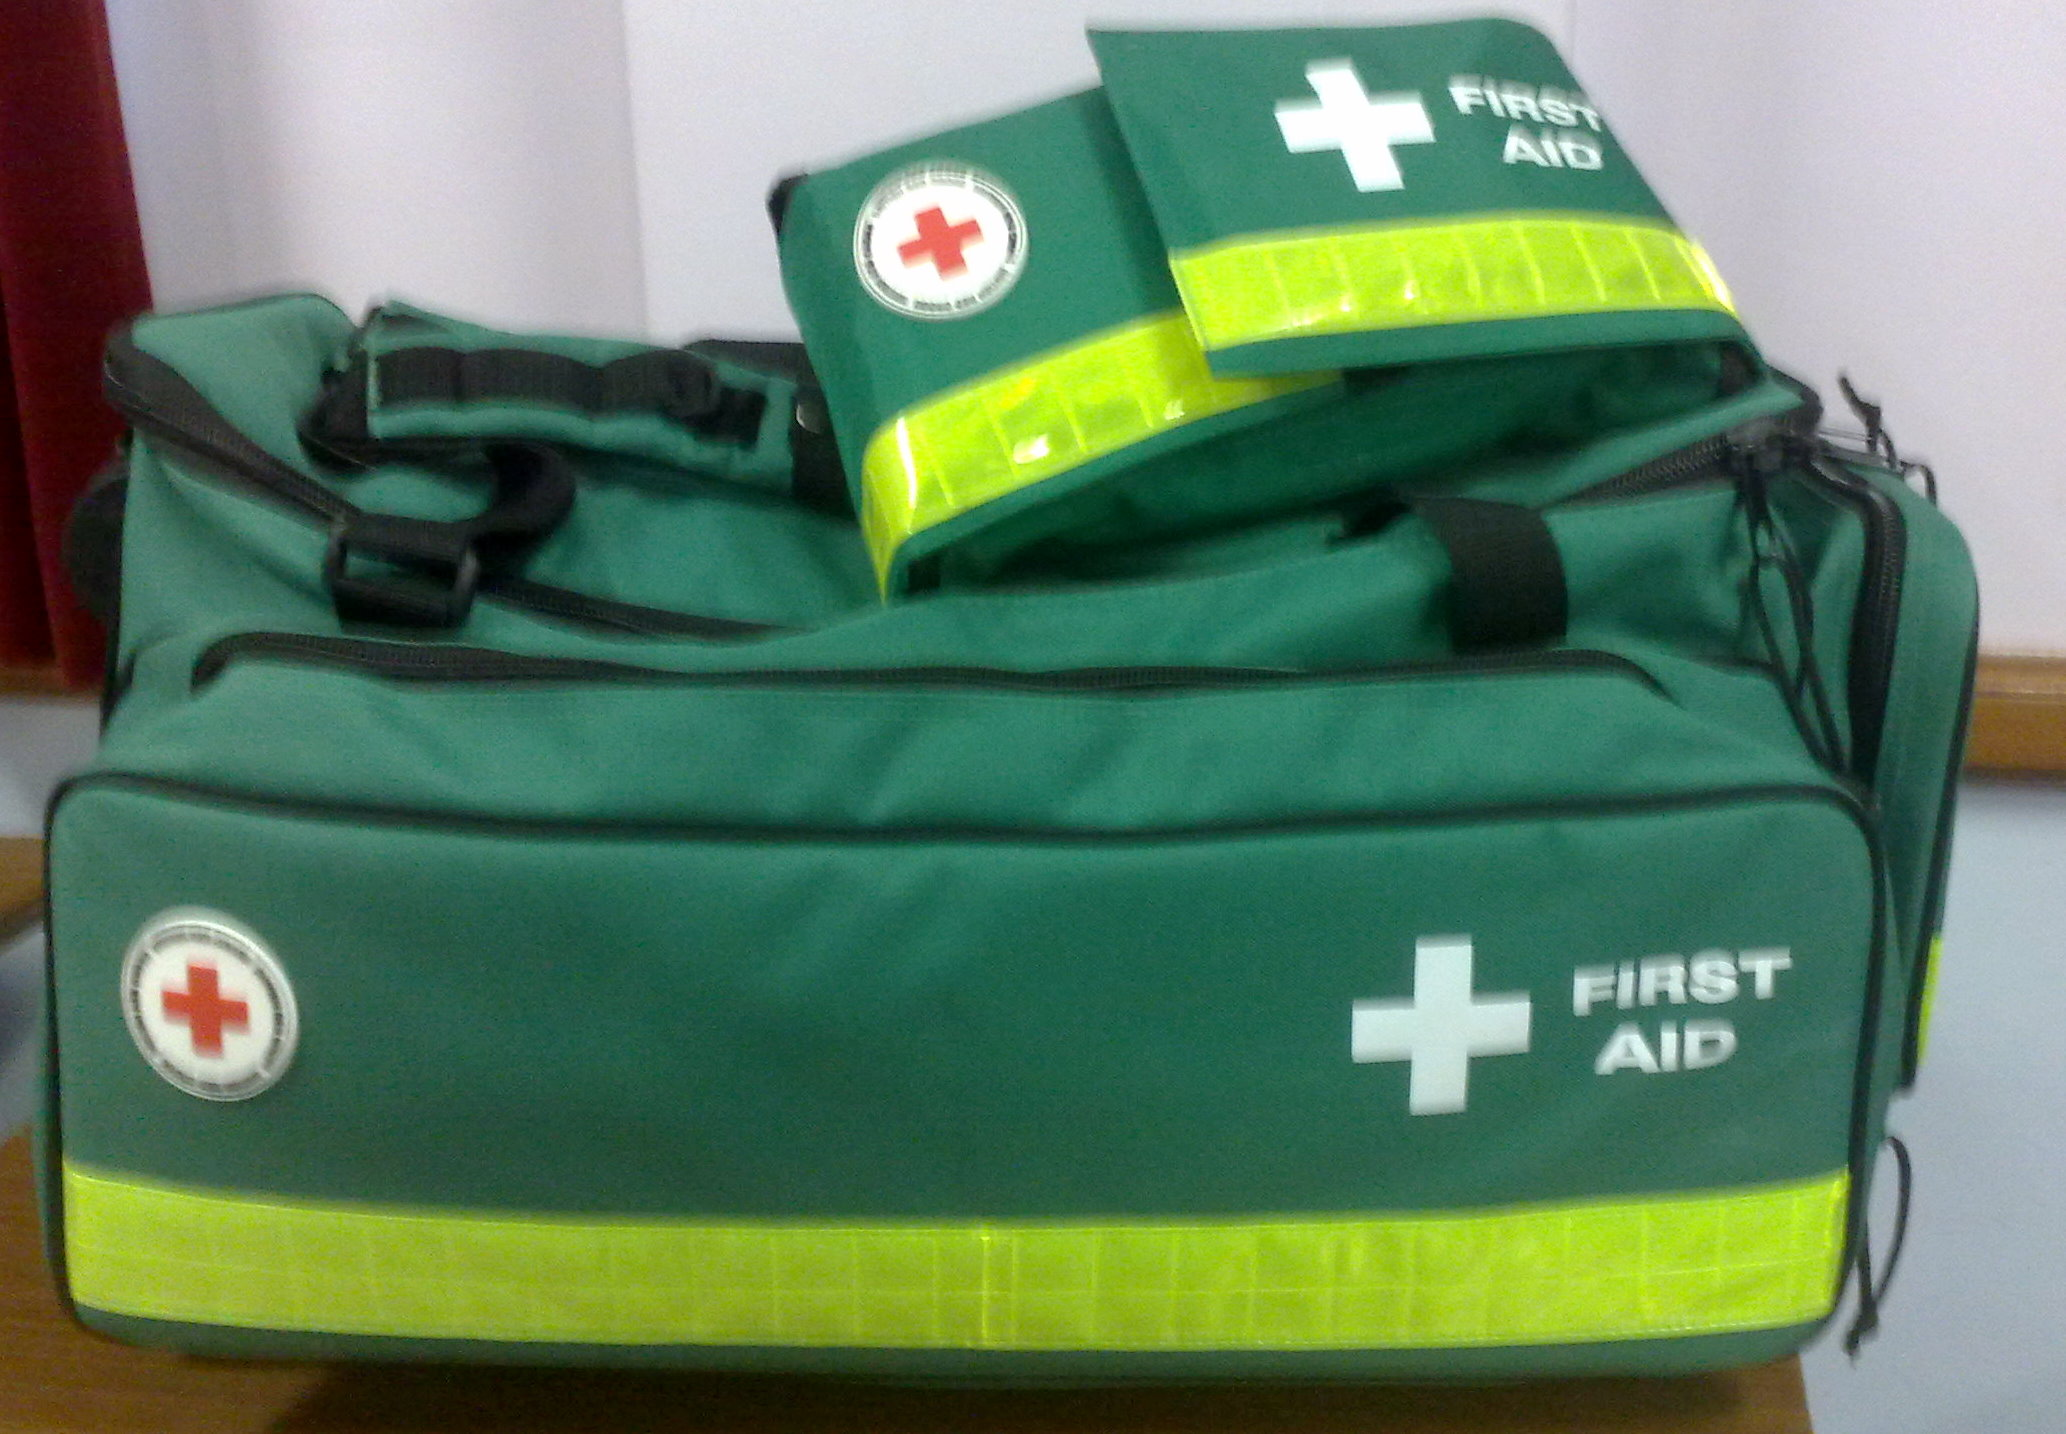 image from http://upload.wikimedia.org/wikipedia/commons/6/62/British_Red_Cross_First_Aid_Kits.jpg